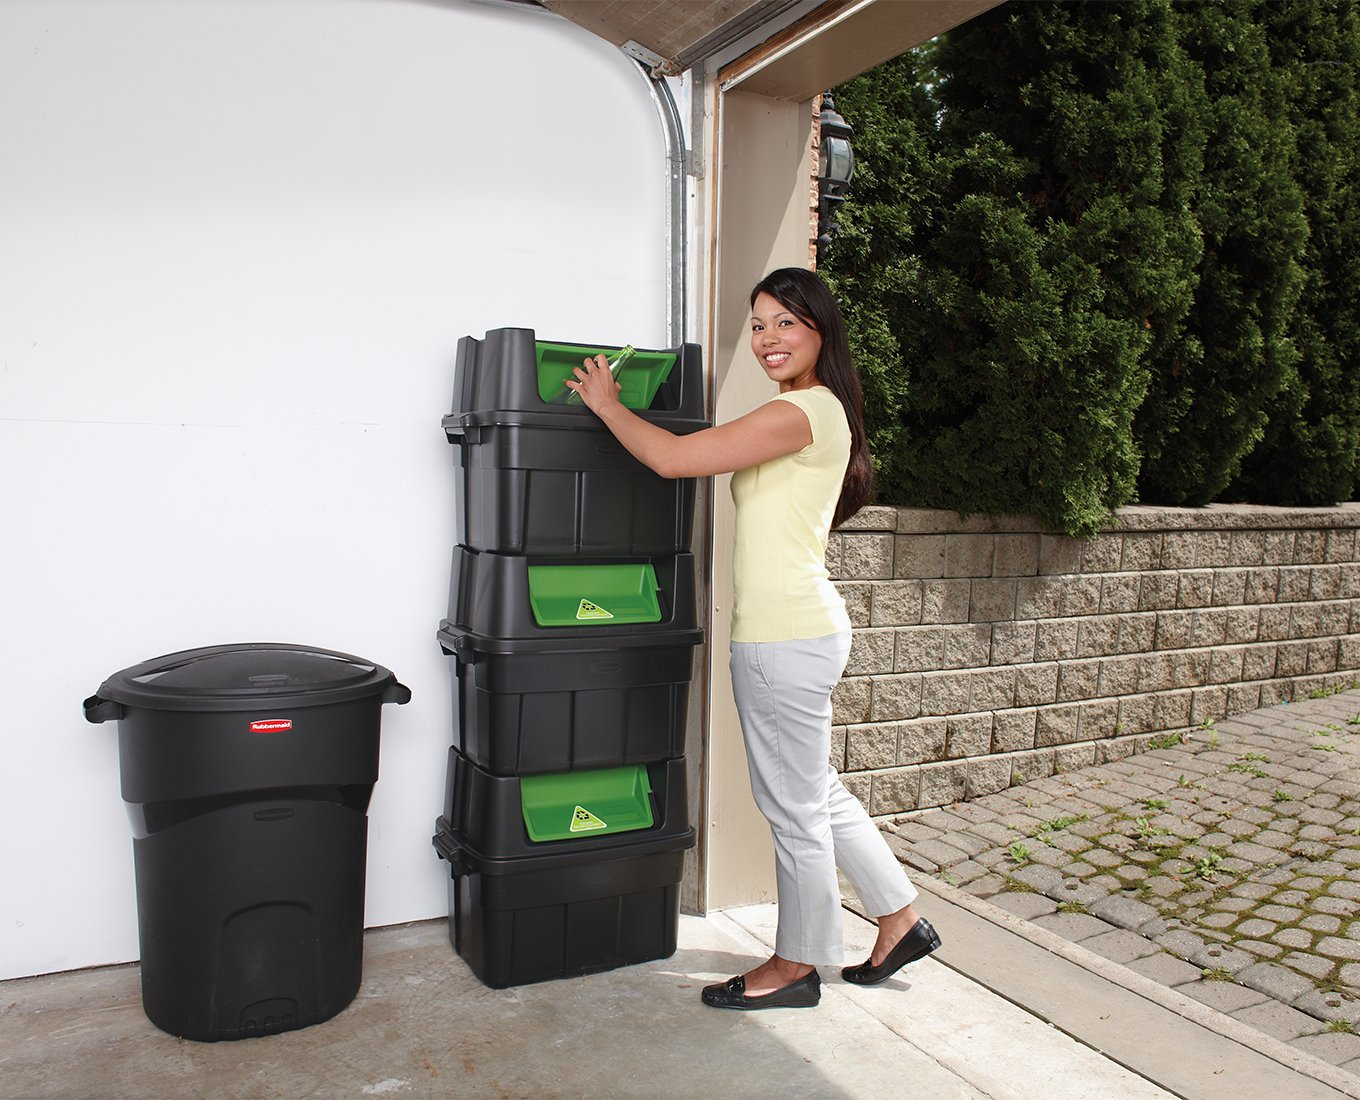 Throwing Out Harmful Household Items